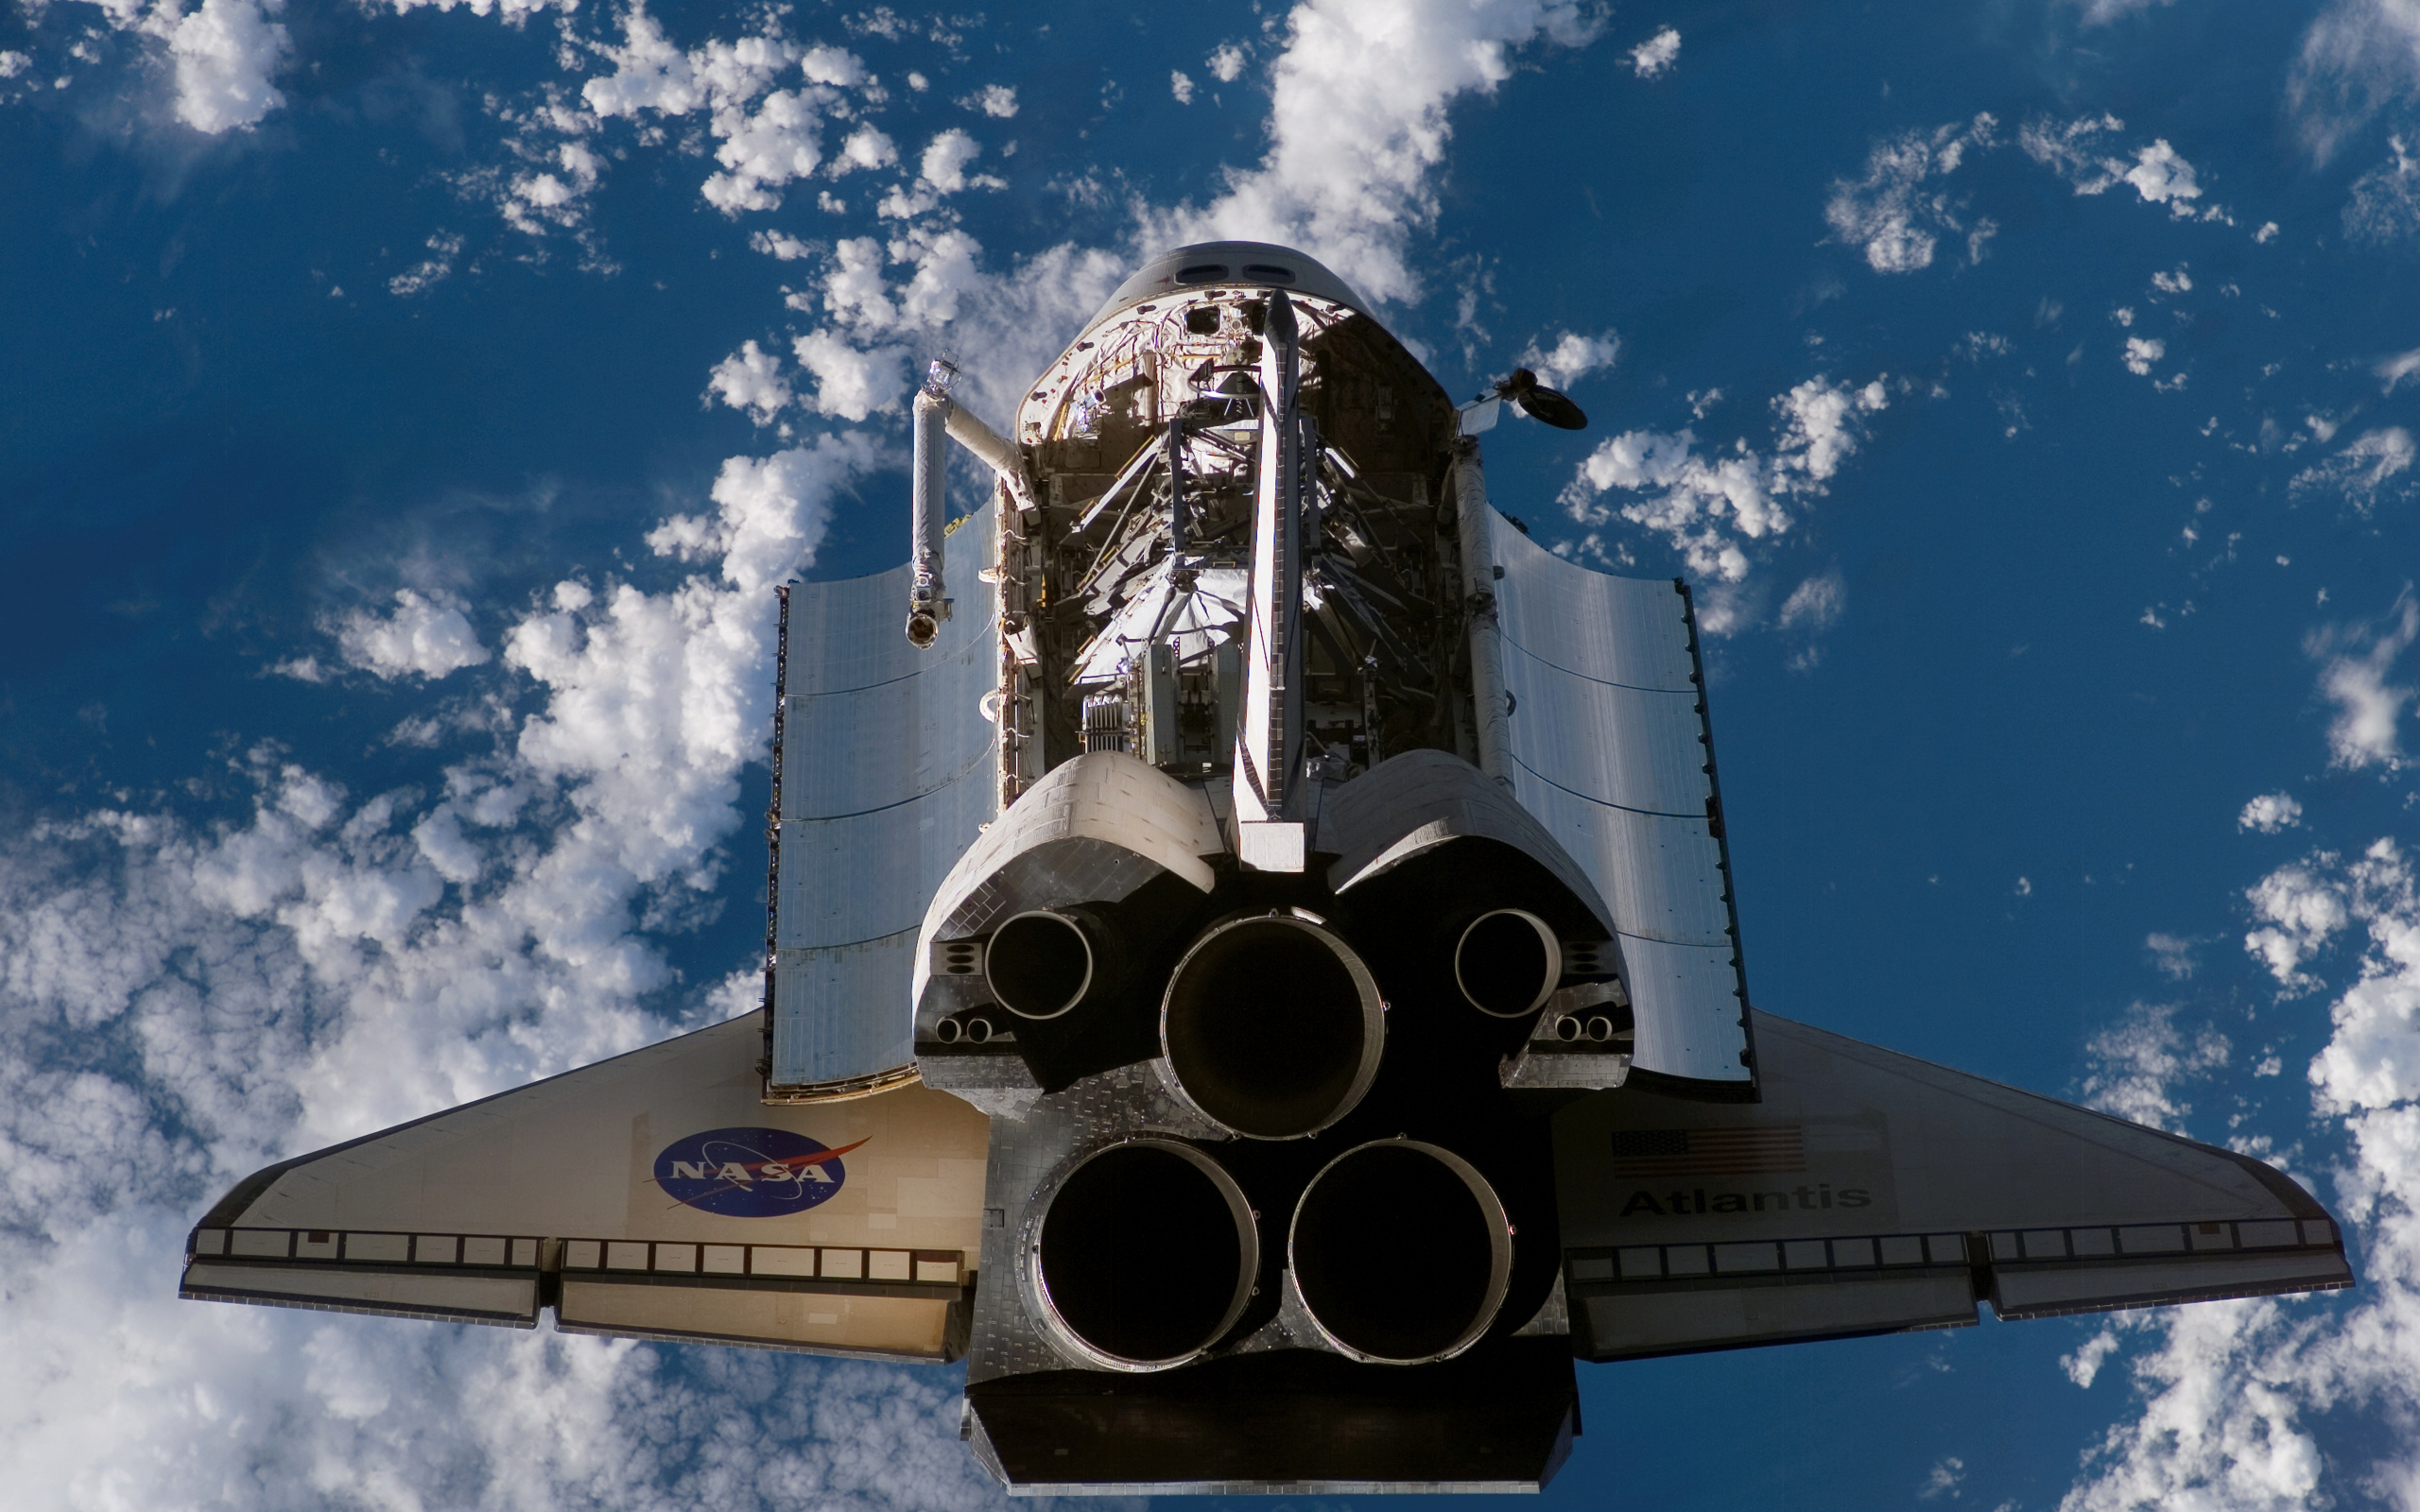 Space Shuttle Wallpapers 2560x1600